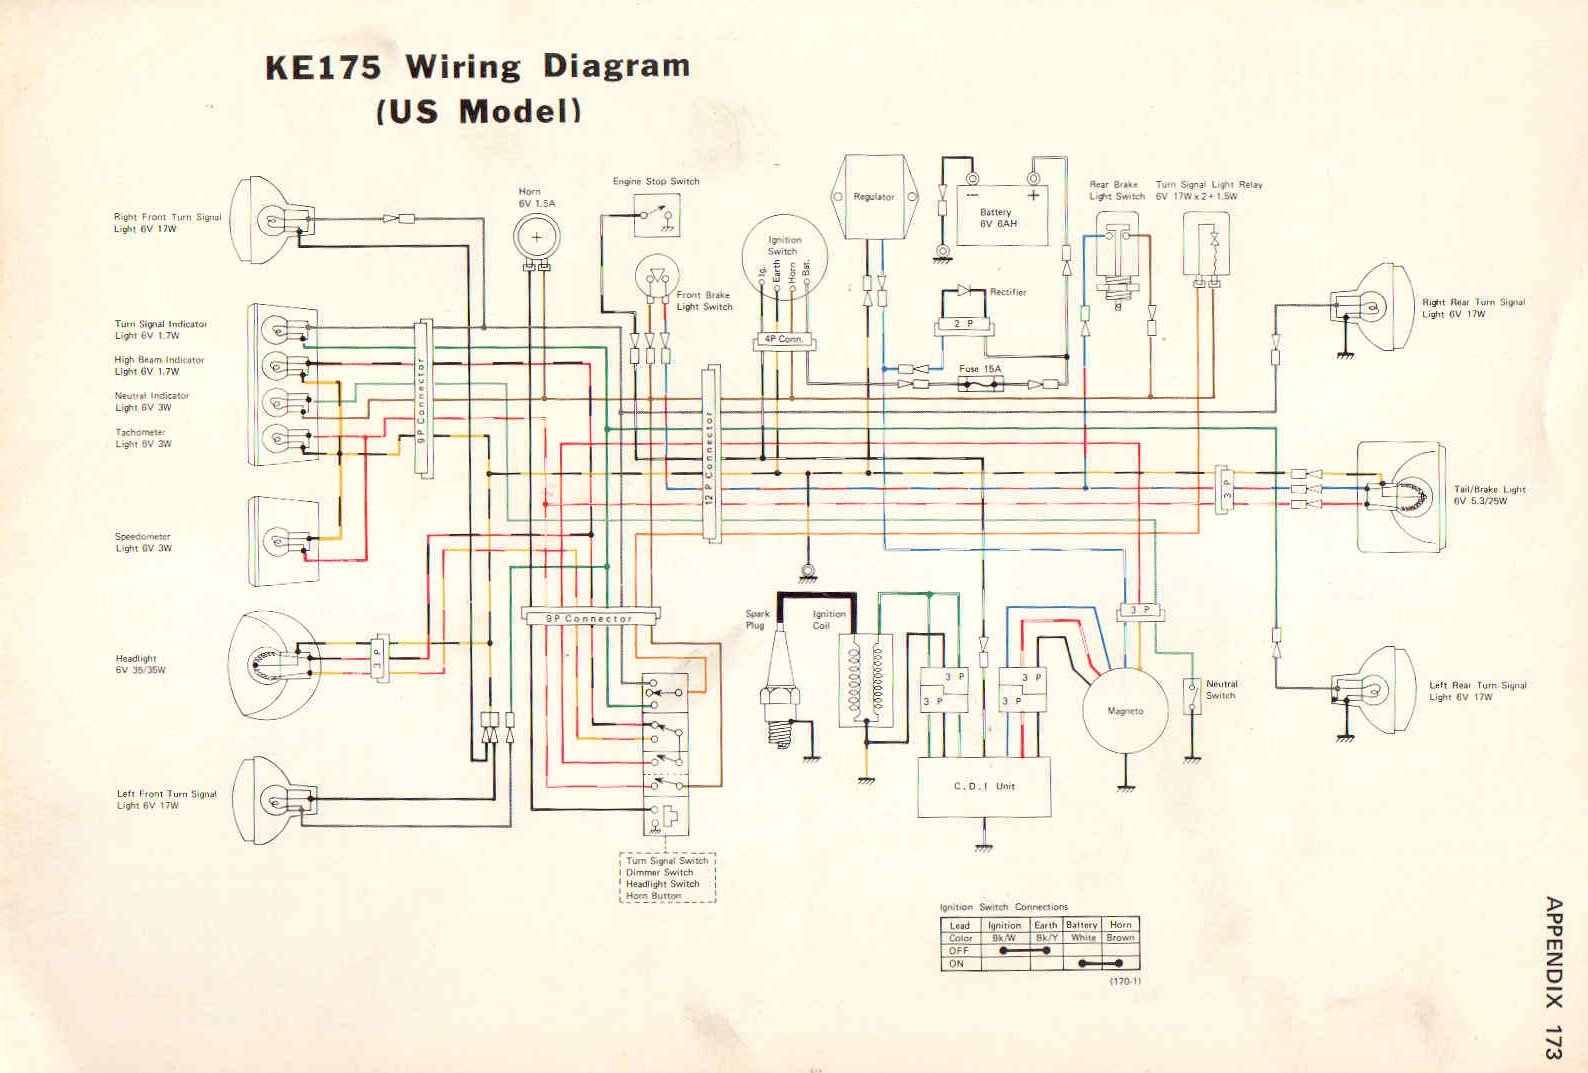 5A90 Rmz 450 Wiring Diagram | Wiring Resources Motorcycle Wiring Harness Diagram Suzuki Rm Z on